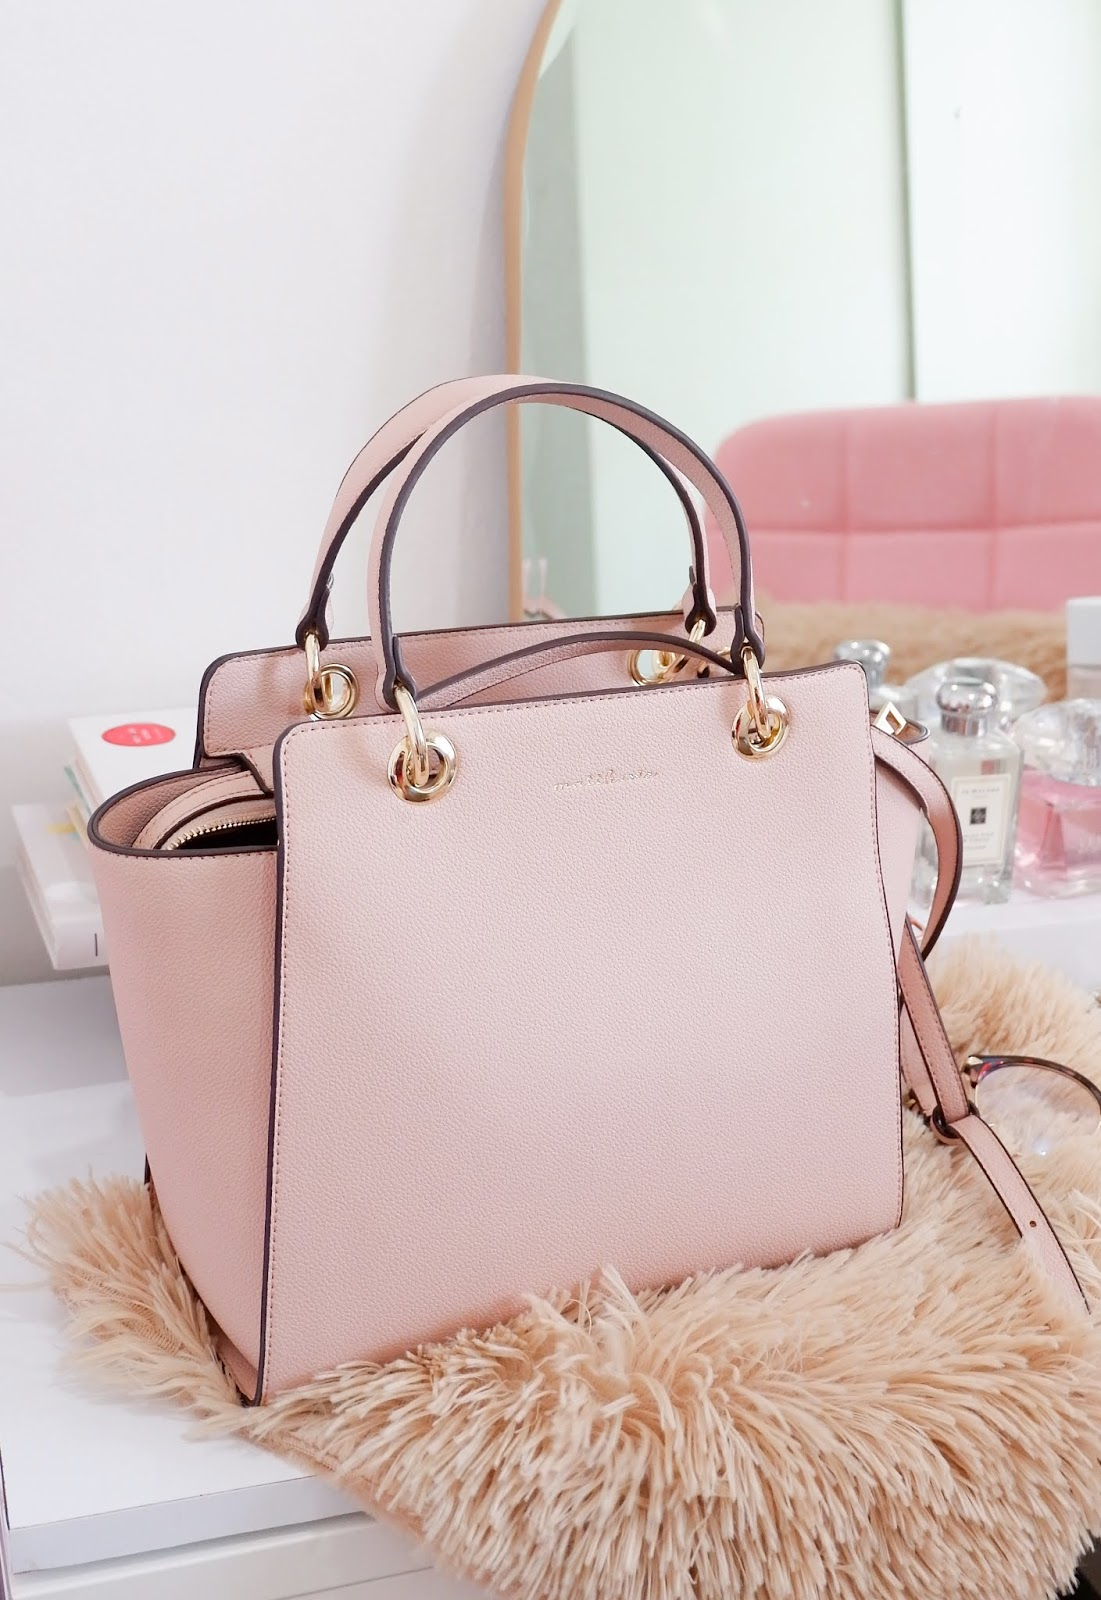 STYLE: GORGEOUS MATTHEWS PH LENNON PINK BAG